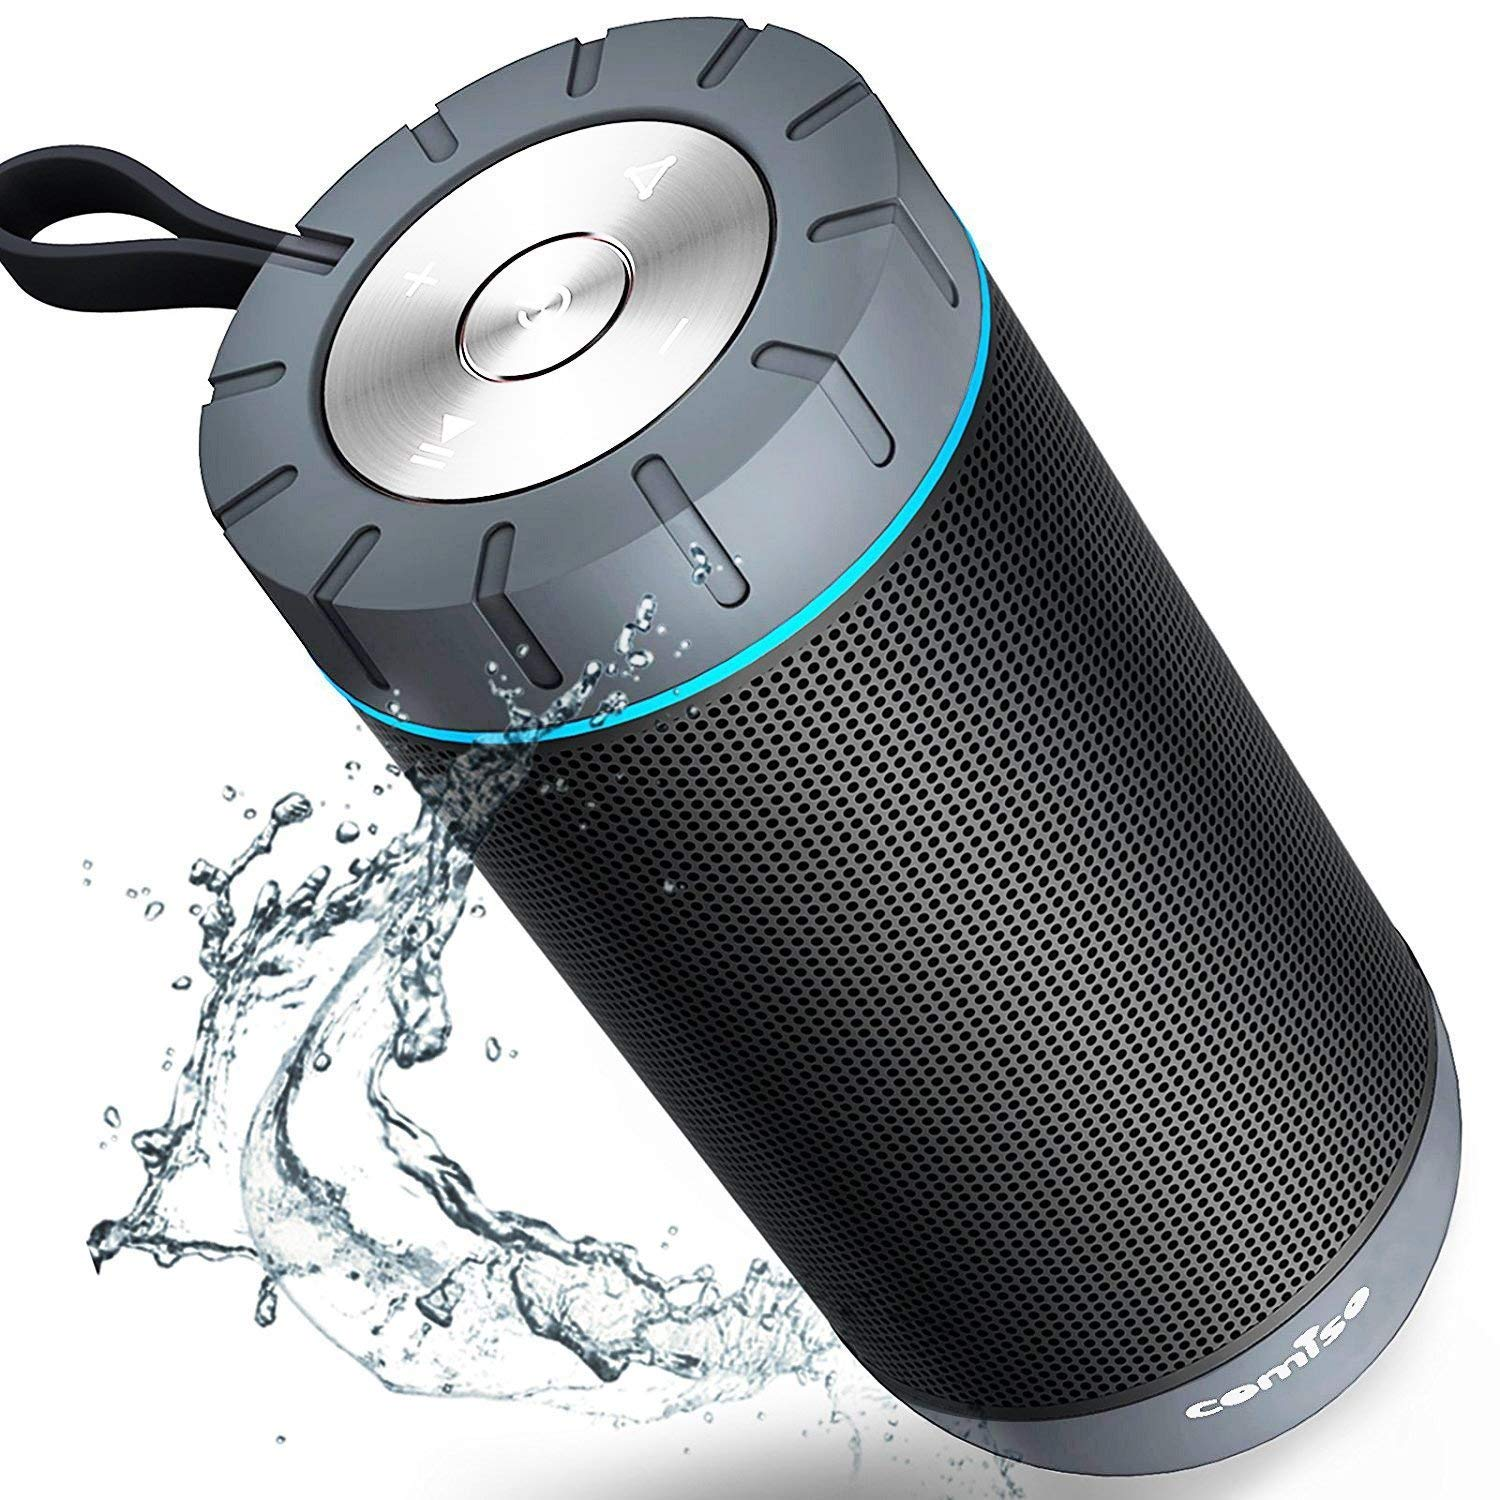 comiso-waterproof-bluetooth-speakers-outdoor-wireless-portable-speaker-with-20-hours-playtime-superior-sound-for-camping-beach-sports-pool-party-shower-dark-grey